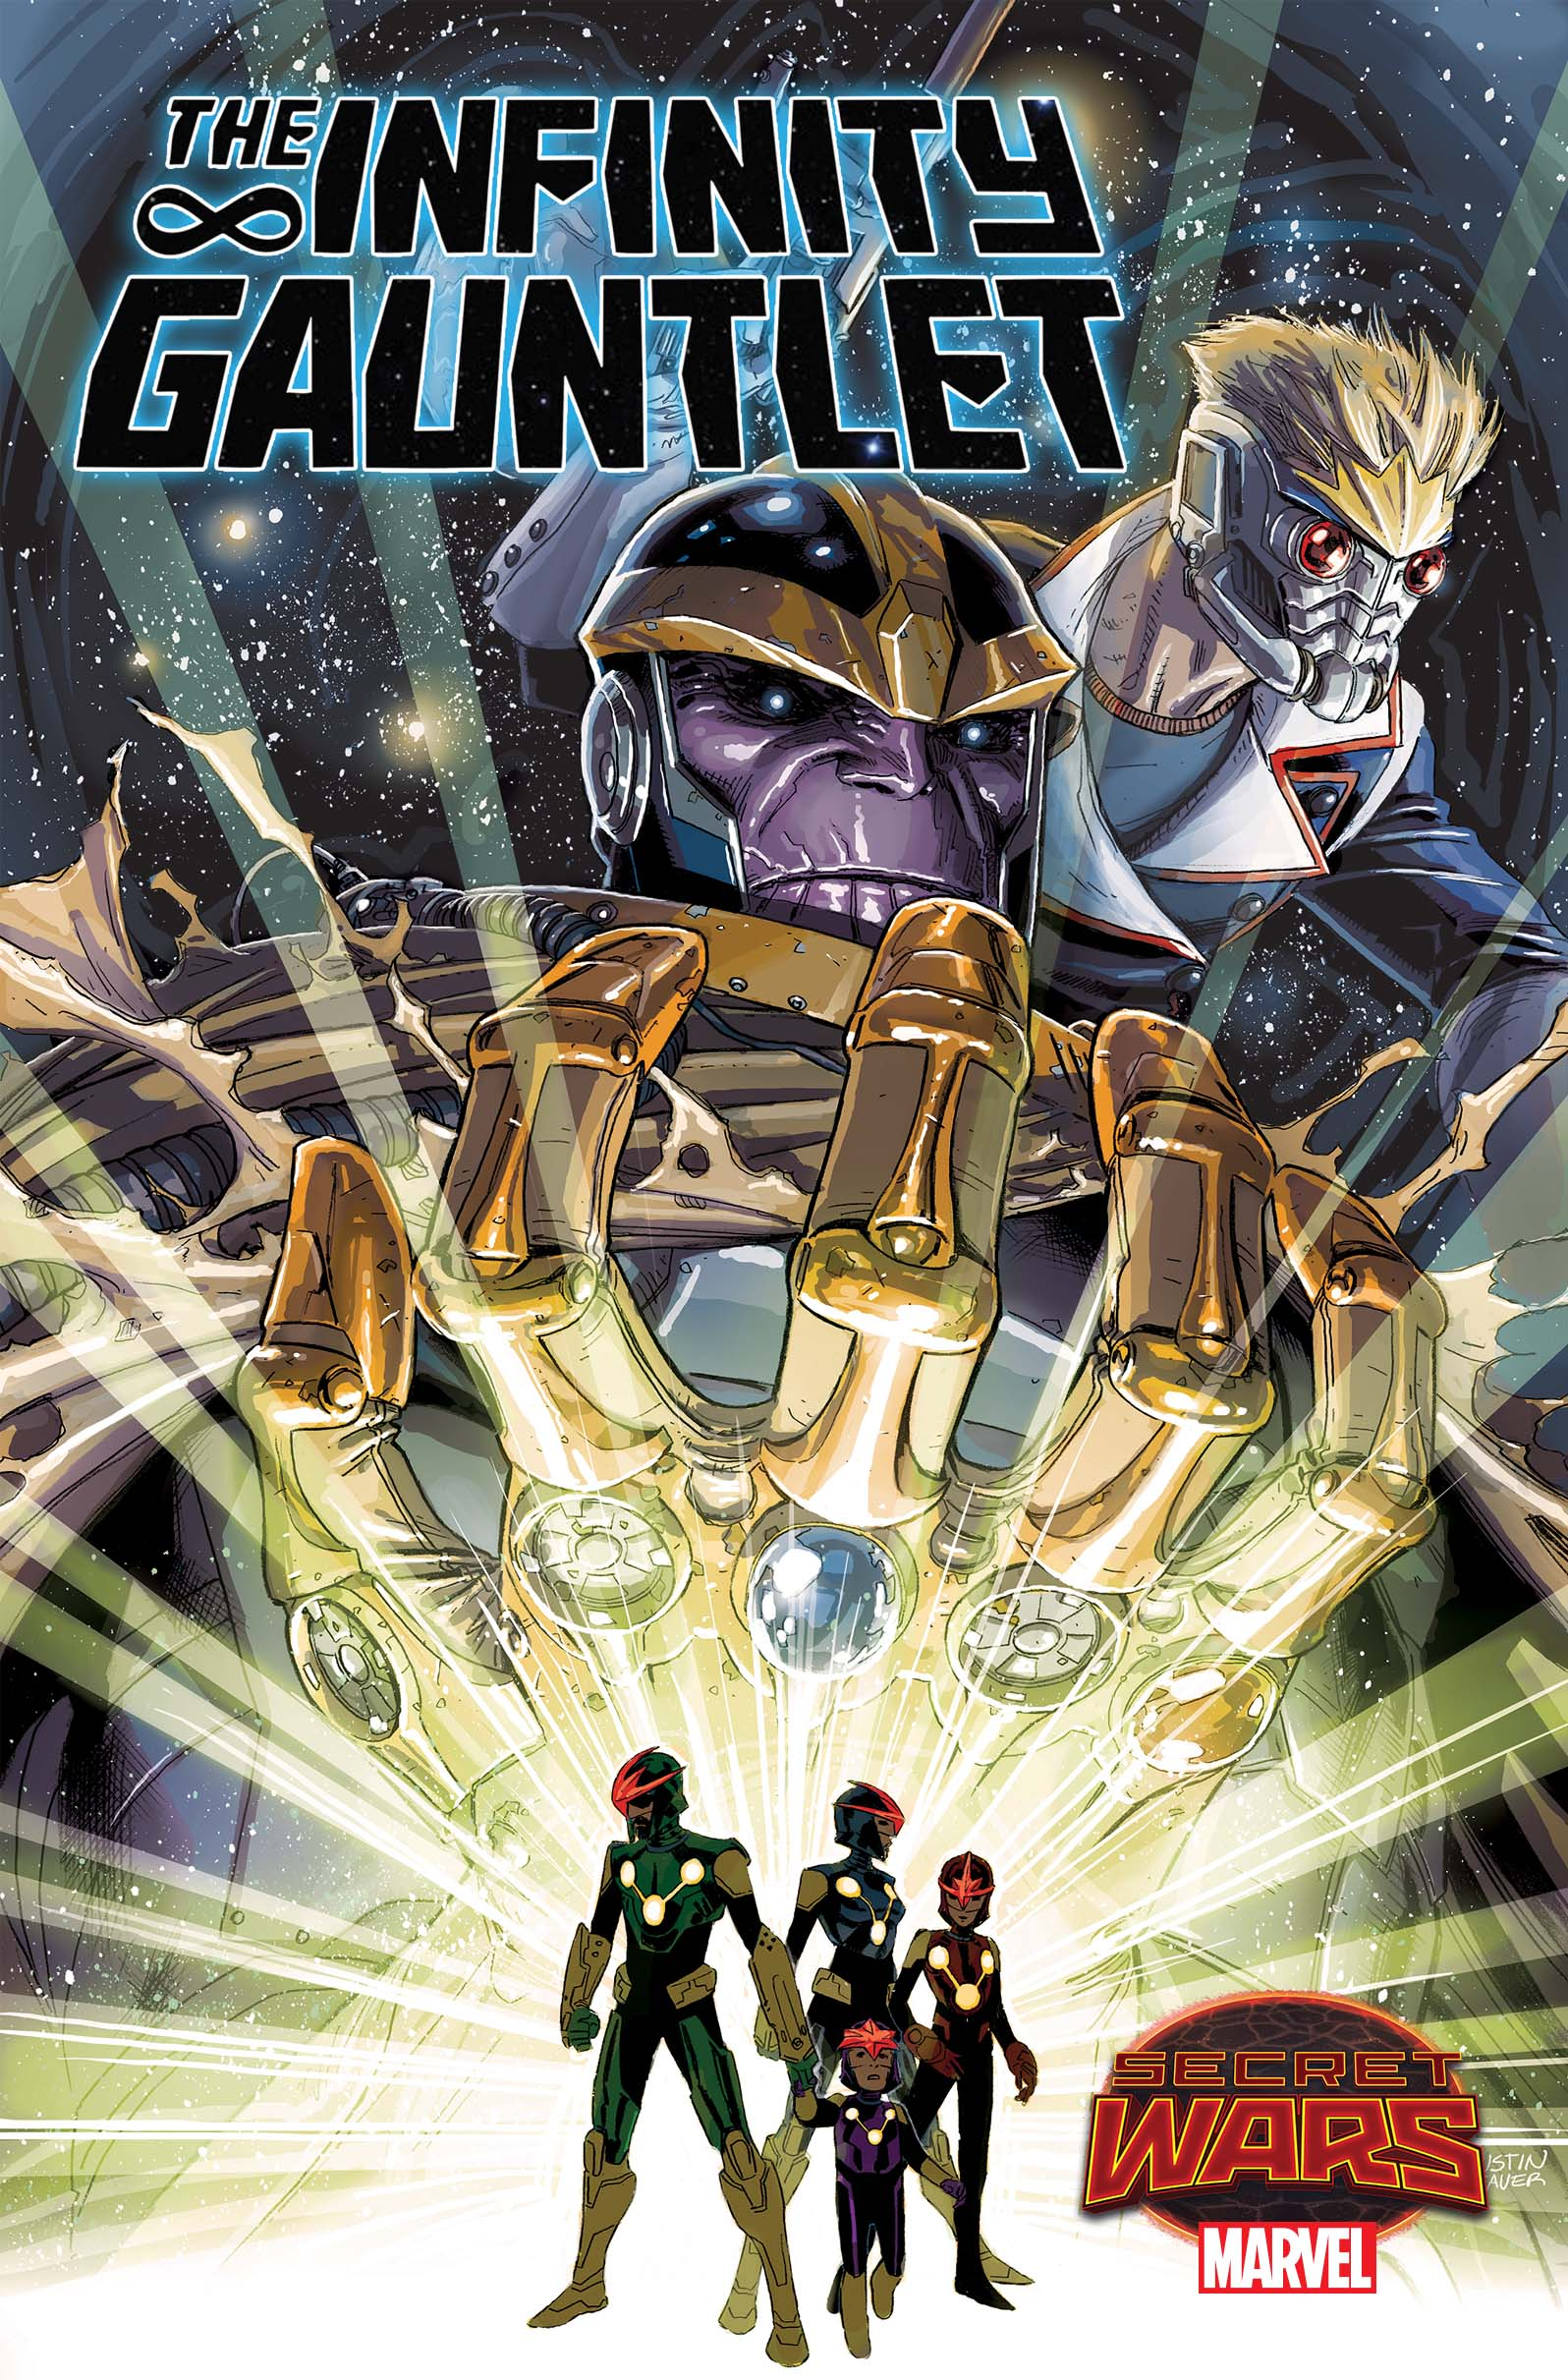 Infinity Gauntlet #1 brings the hunt for the stones to